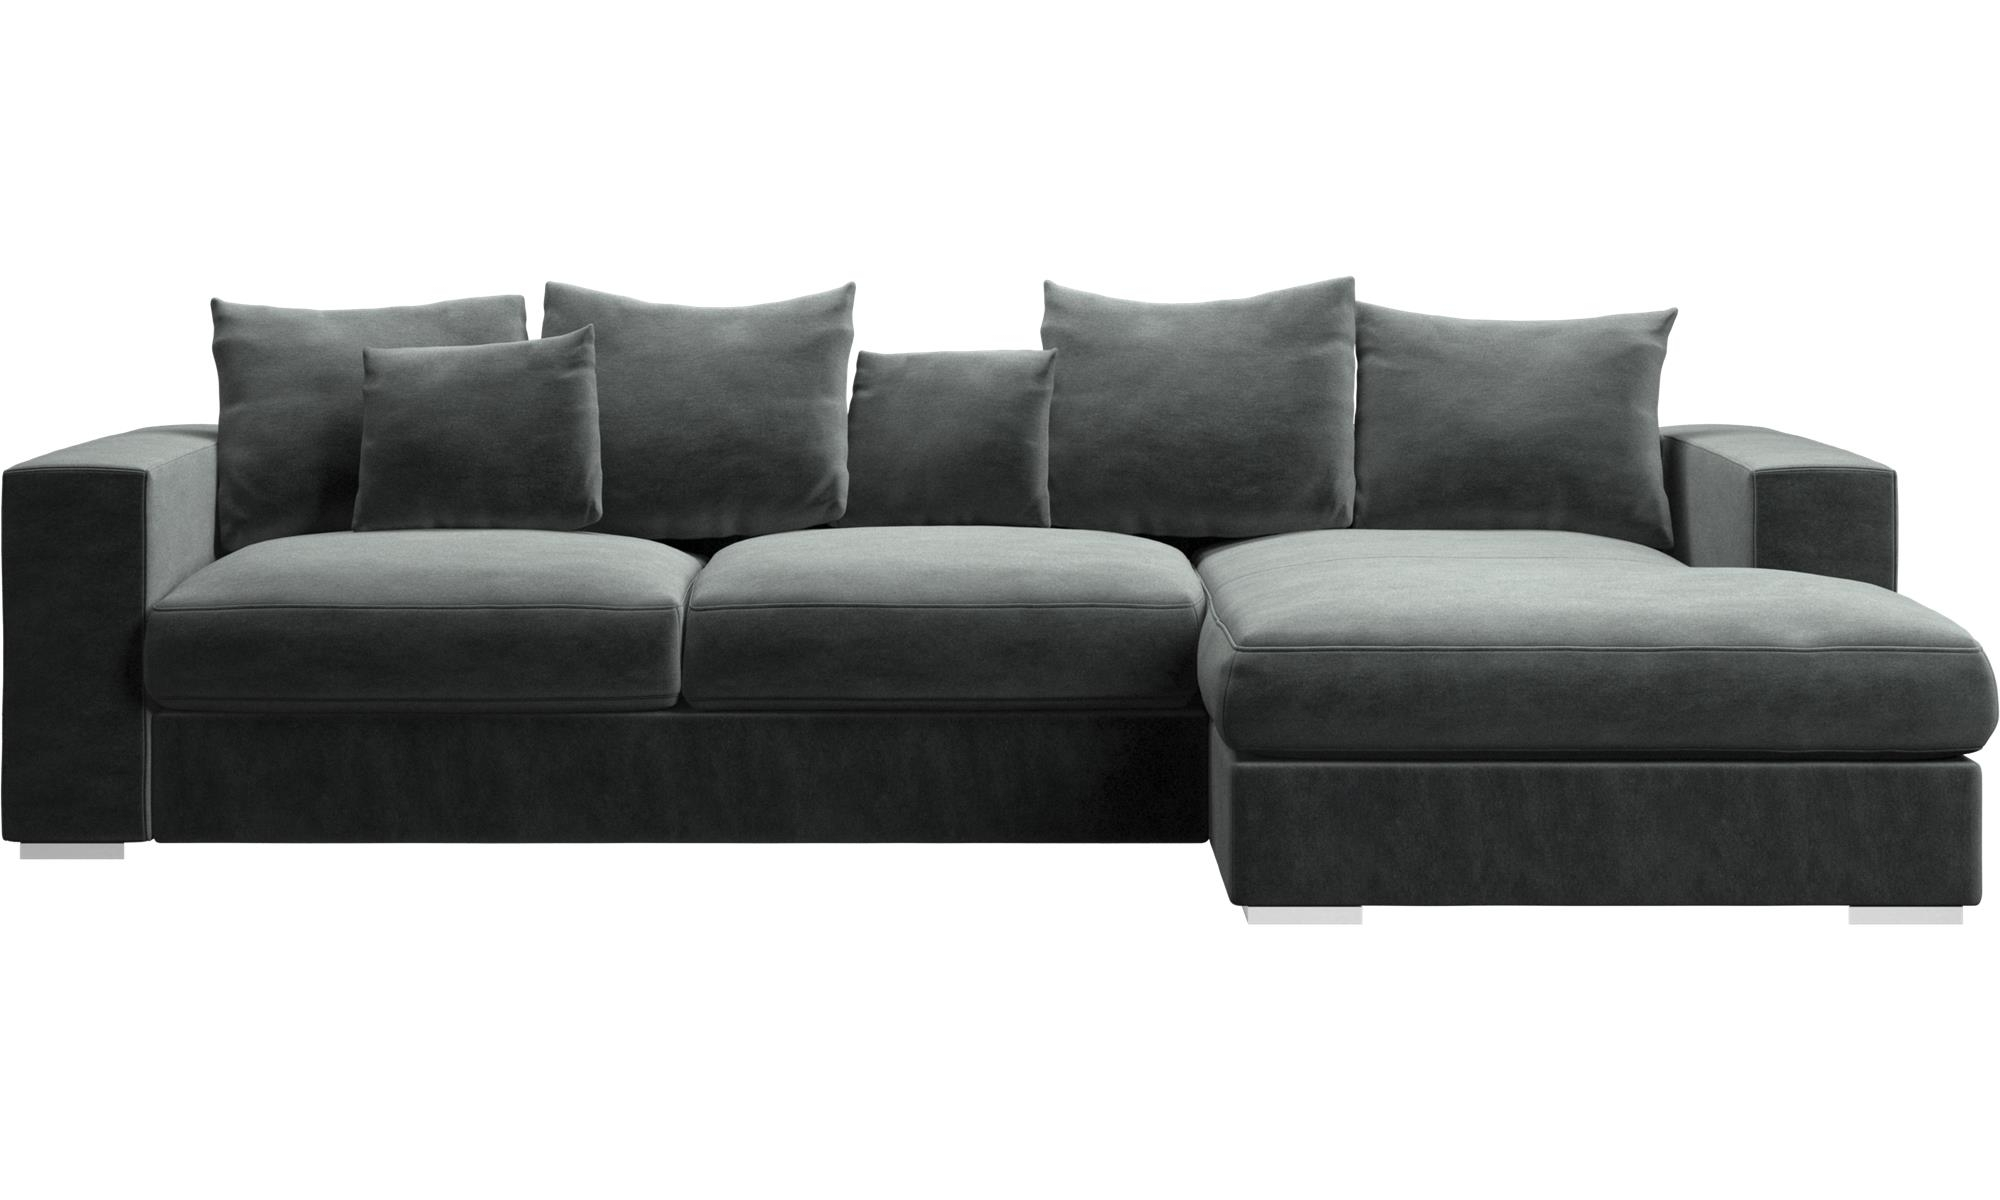 2017 Chaise Lounge Sofas – Cenova Sofa With Resting Unit – Boconcept Throughout Chaise Lounge Sofas (View 6 of 15)